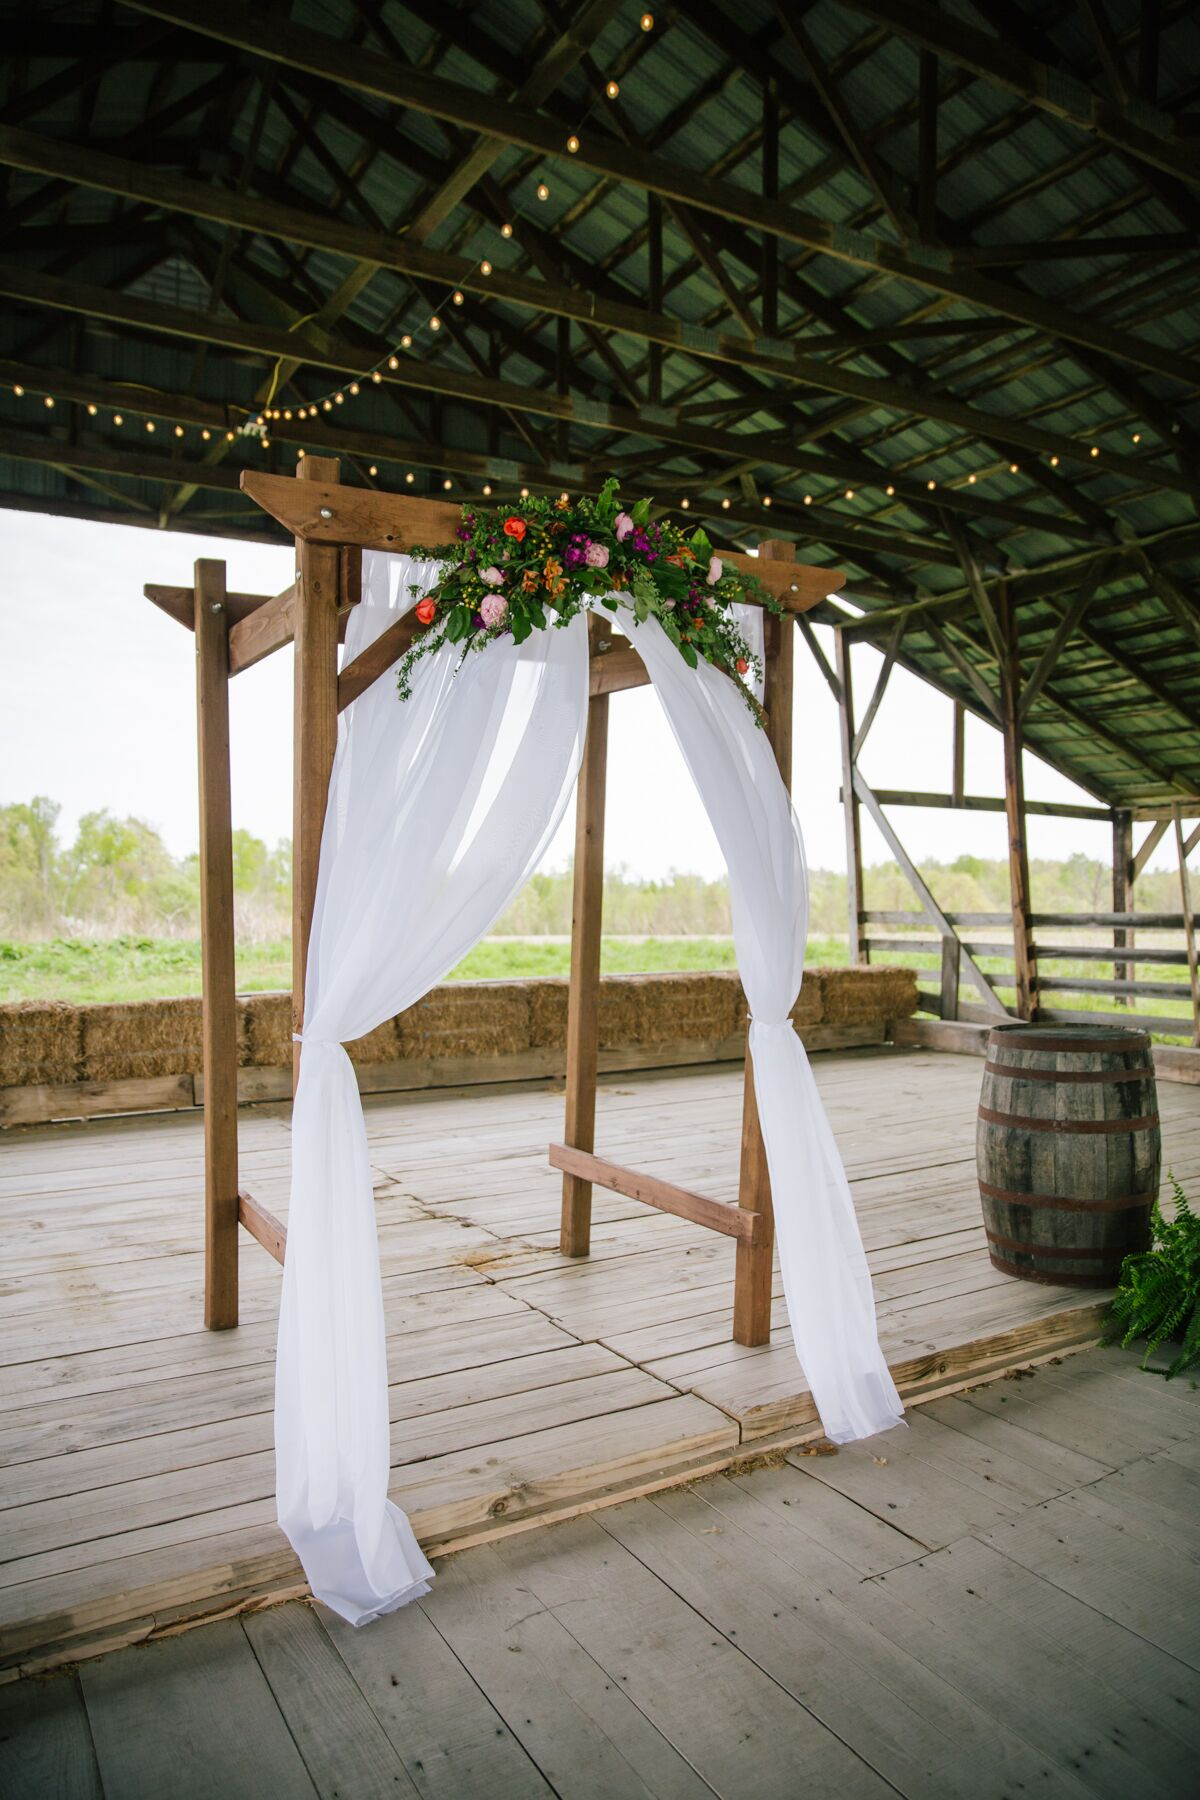 Diy Wooden Wedding Arch With Colorful Flowers